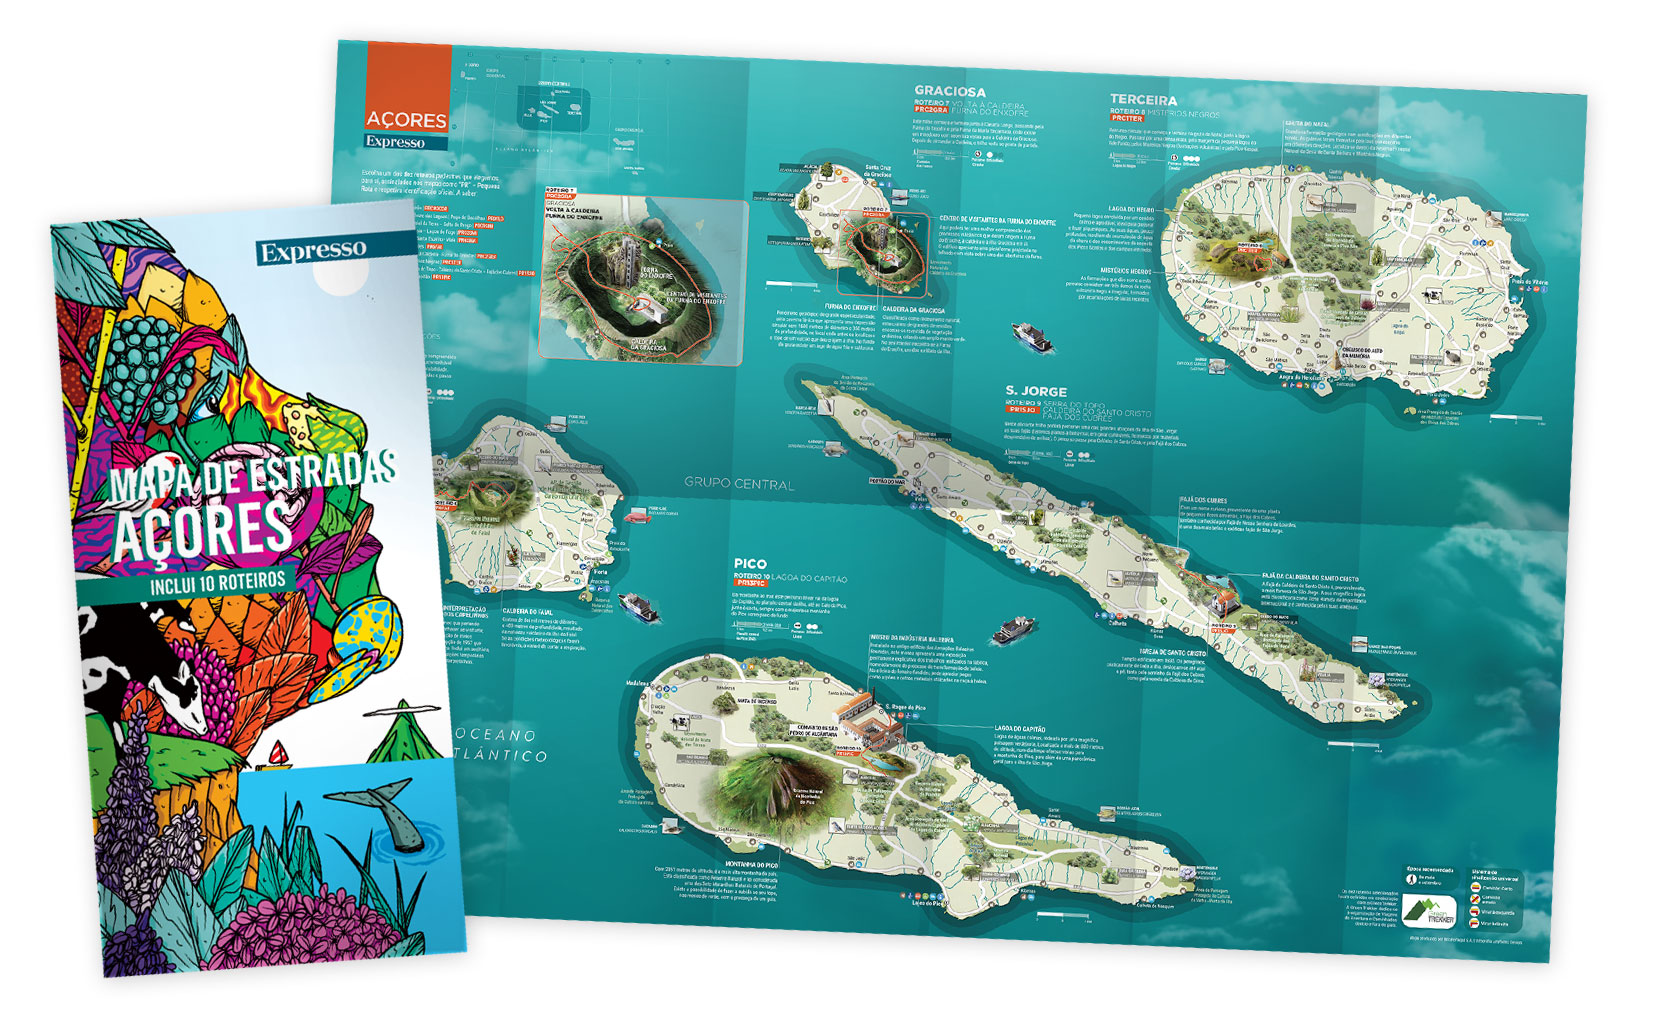 mapas-expresso-2019-acores-by-infoportugal